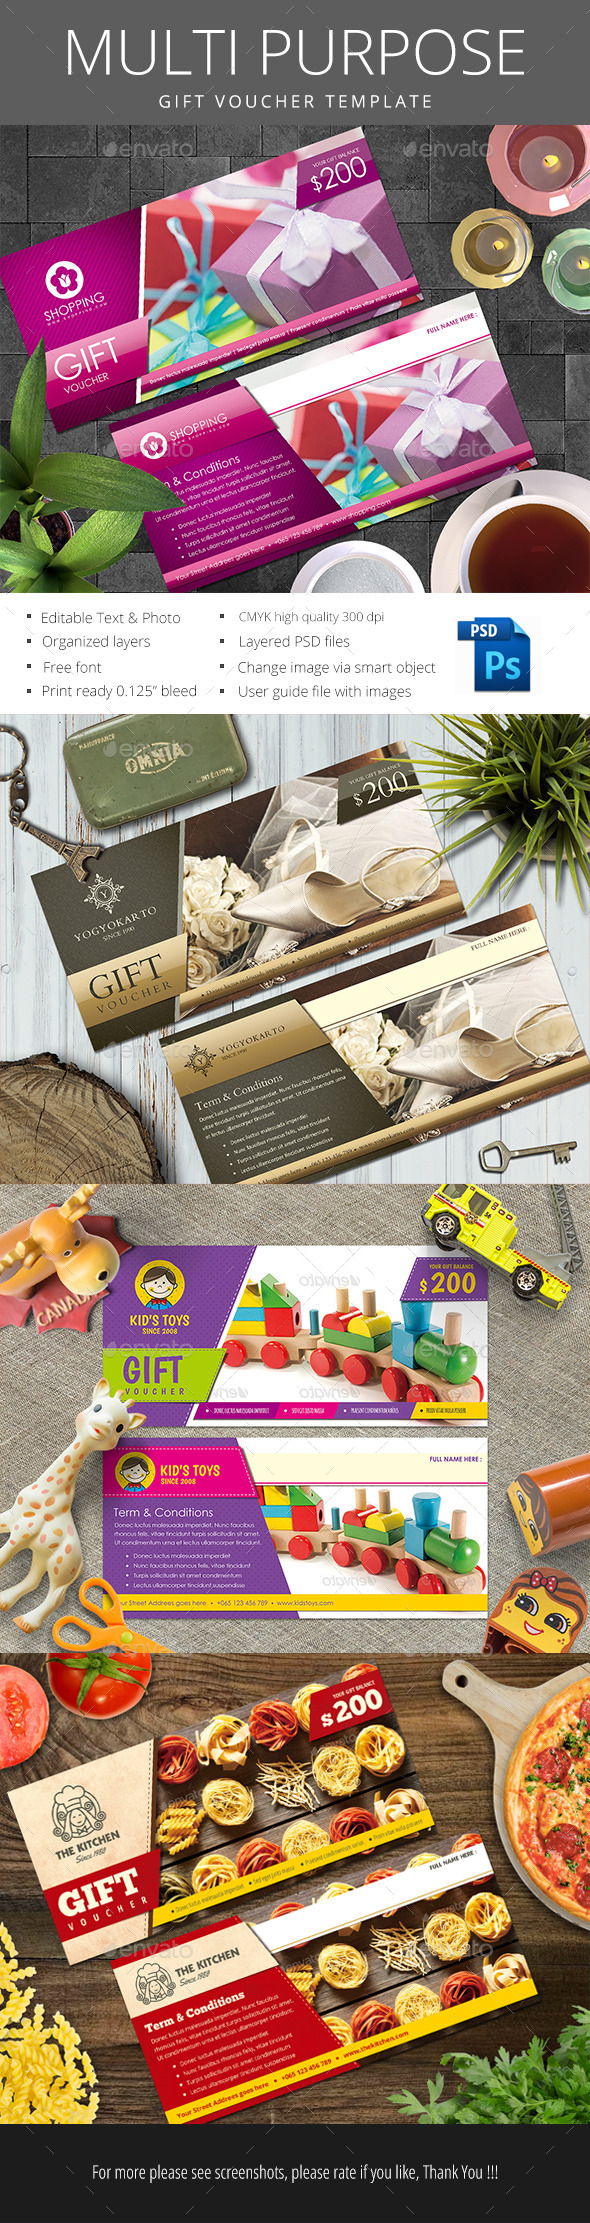 Multipurpose Gift Voucher - Loyalty Cards Cards & Invites